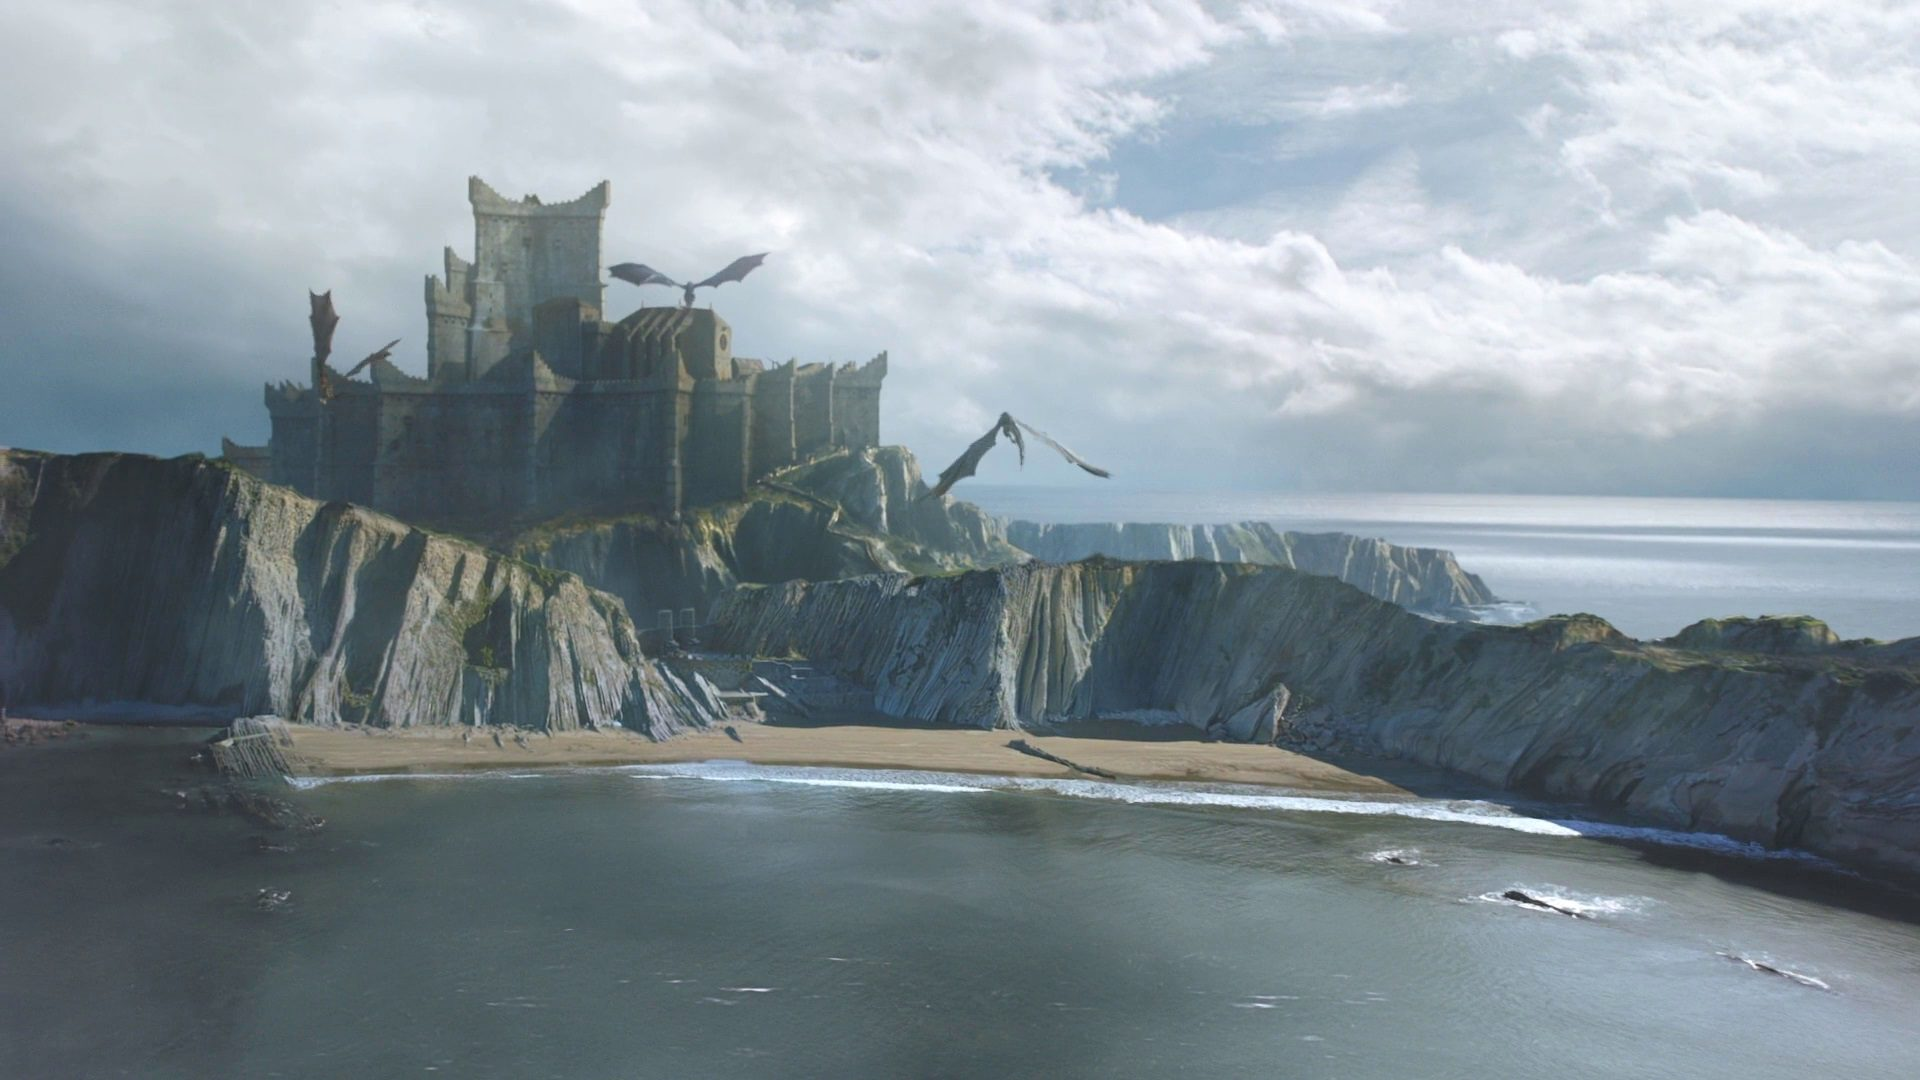 34-Dragons-Fly-over-Dragonstone-1920x1080.jpg